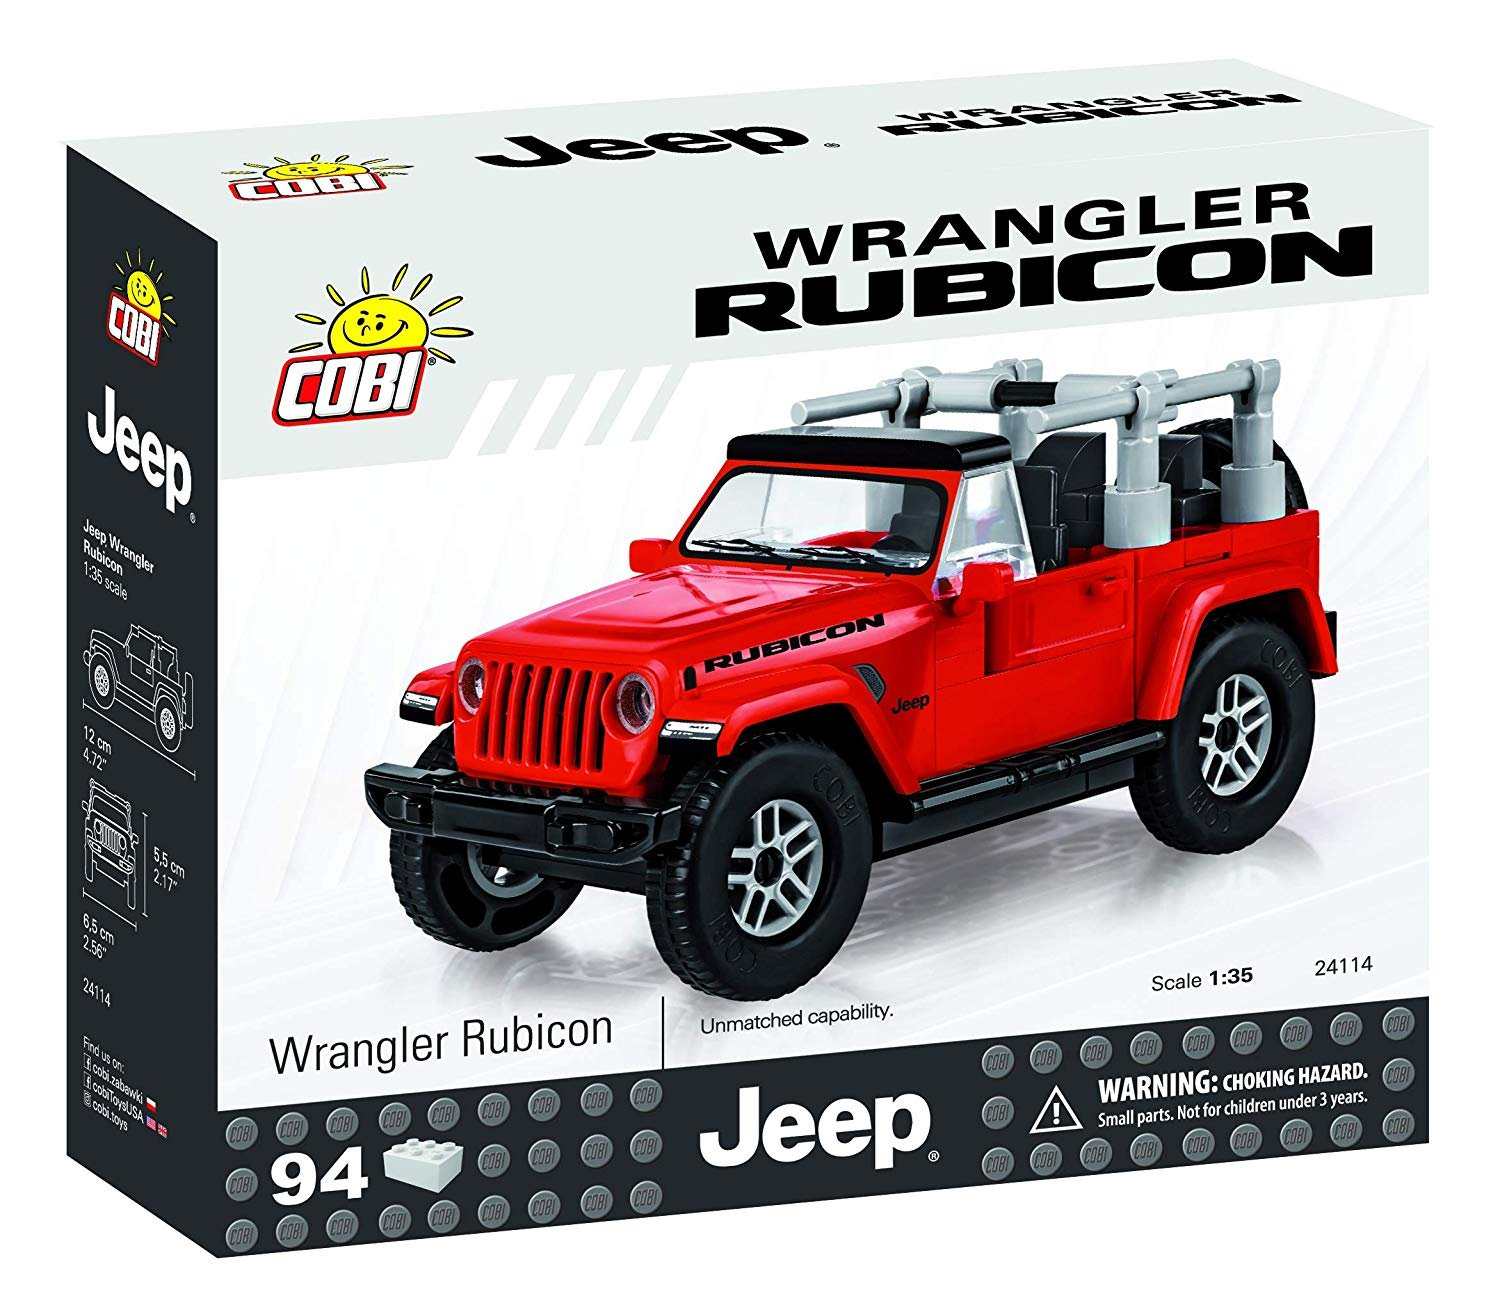 Cobi Wrangler Rubicon Building Set